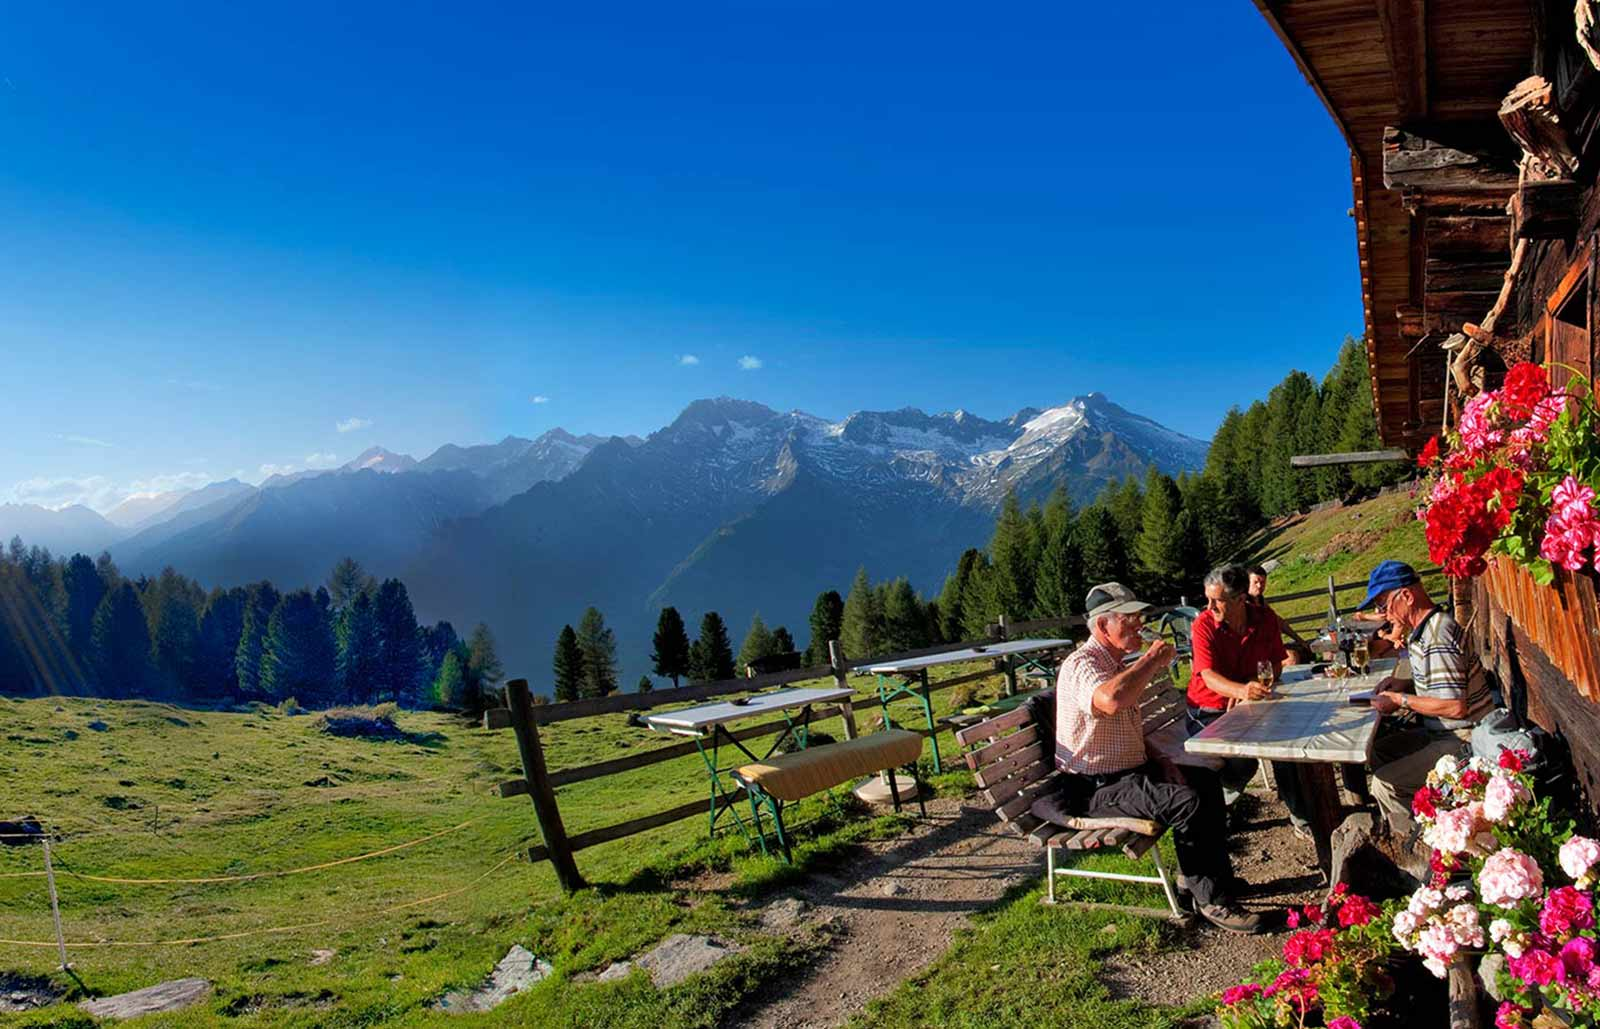 A hiking group is taking a break, drinking a beer in the Southtyrolean Dolomites